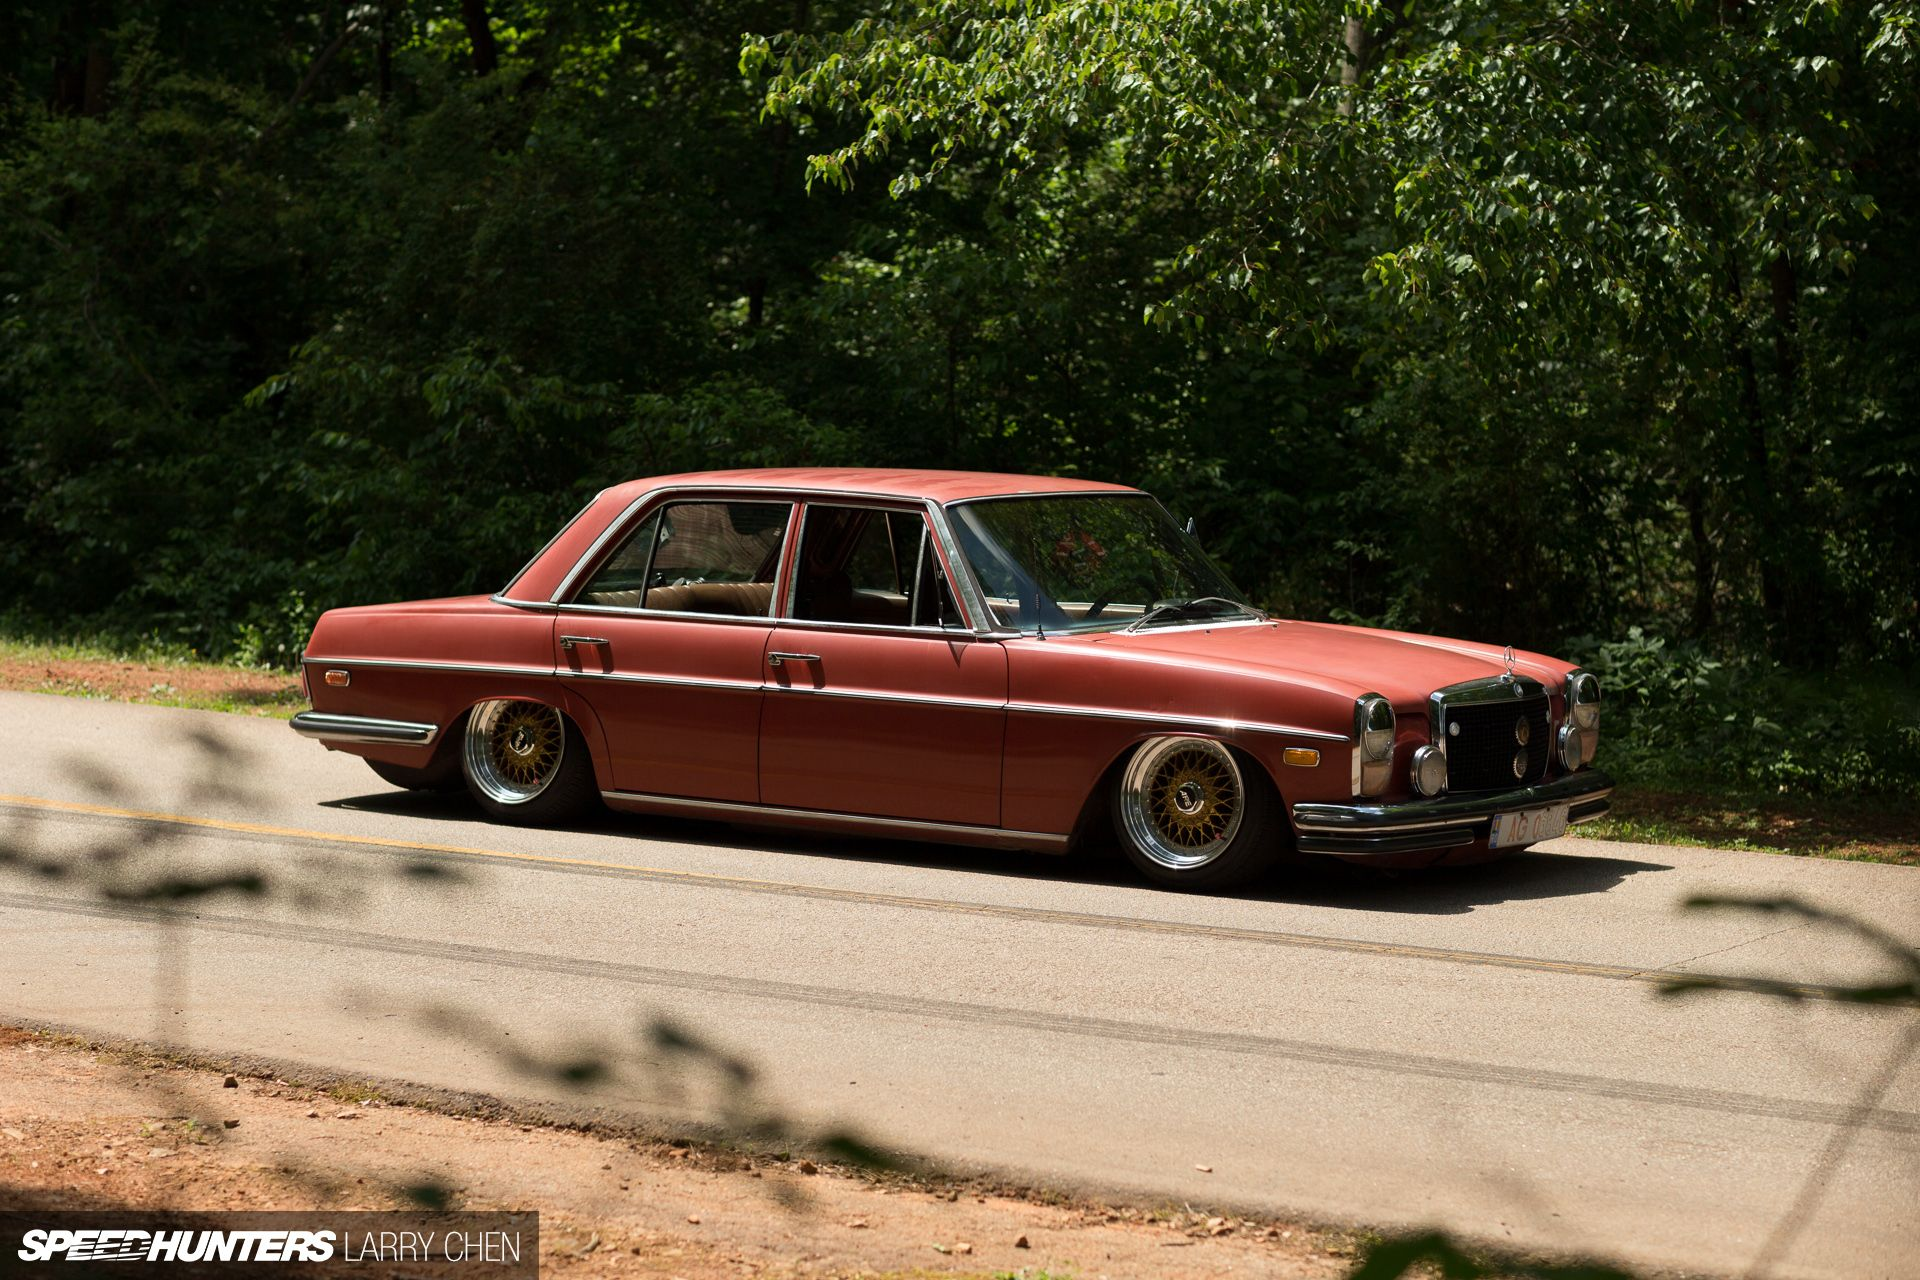 What Were You Thinking A Vintage Benz Adventure